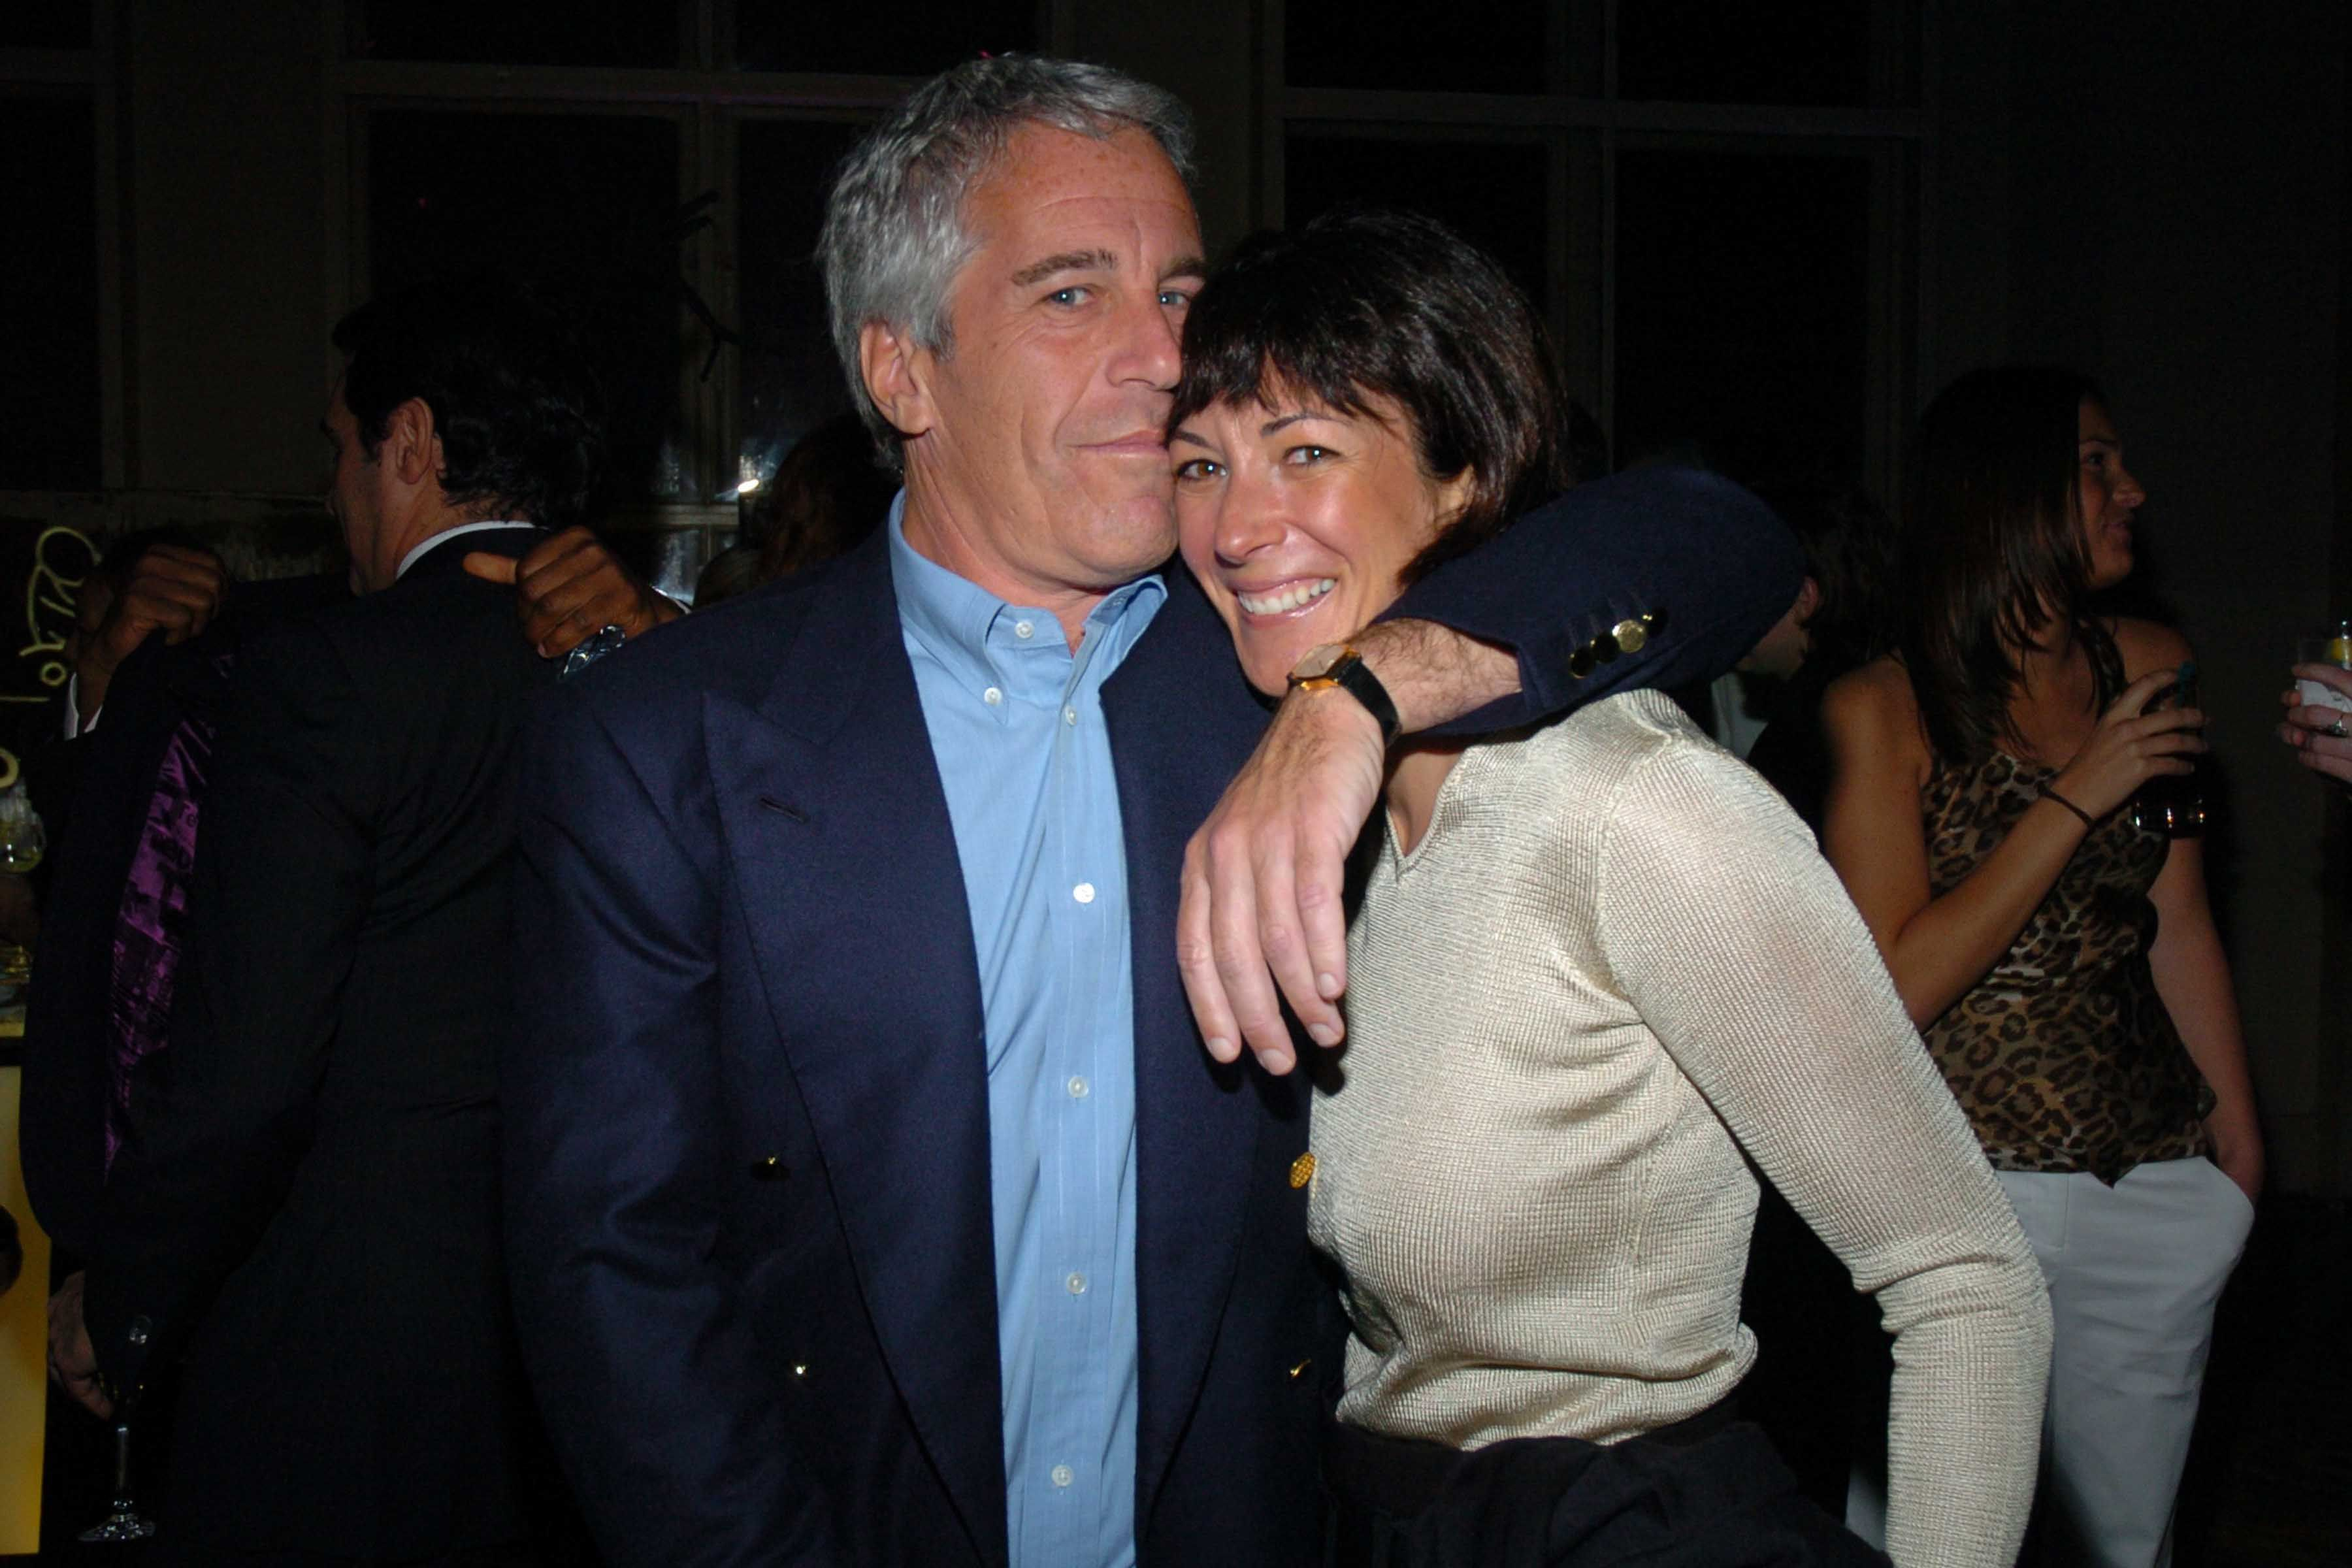 Who Is Ghislaine Maxwell And Why Is She Embroiled In The Jeffrey Epstein Scandal?